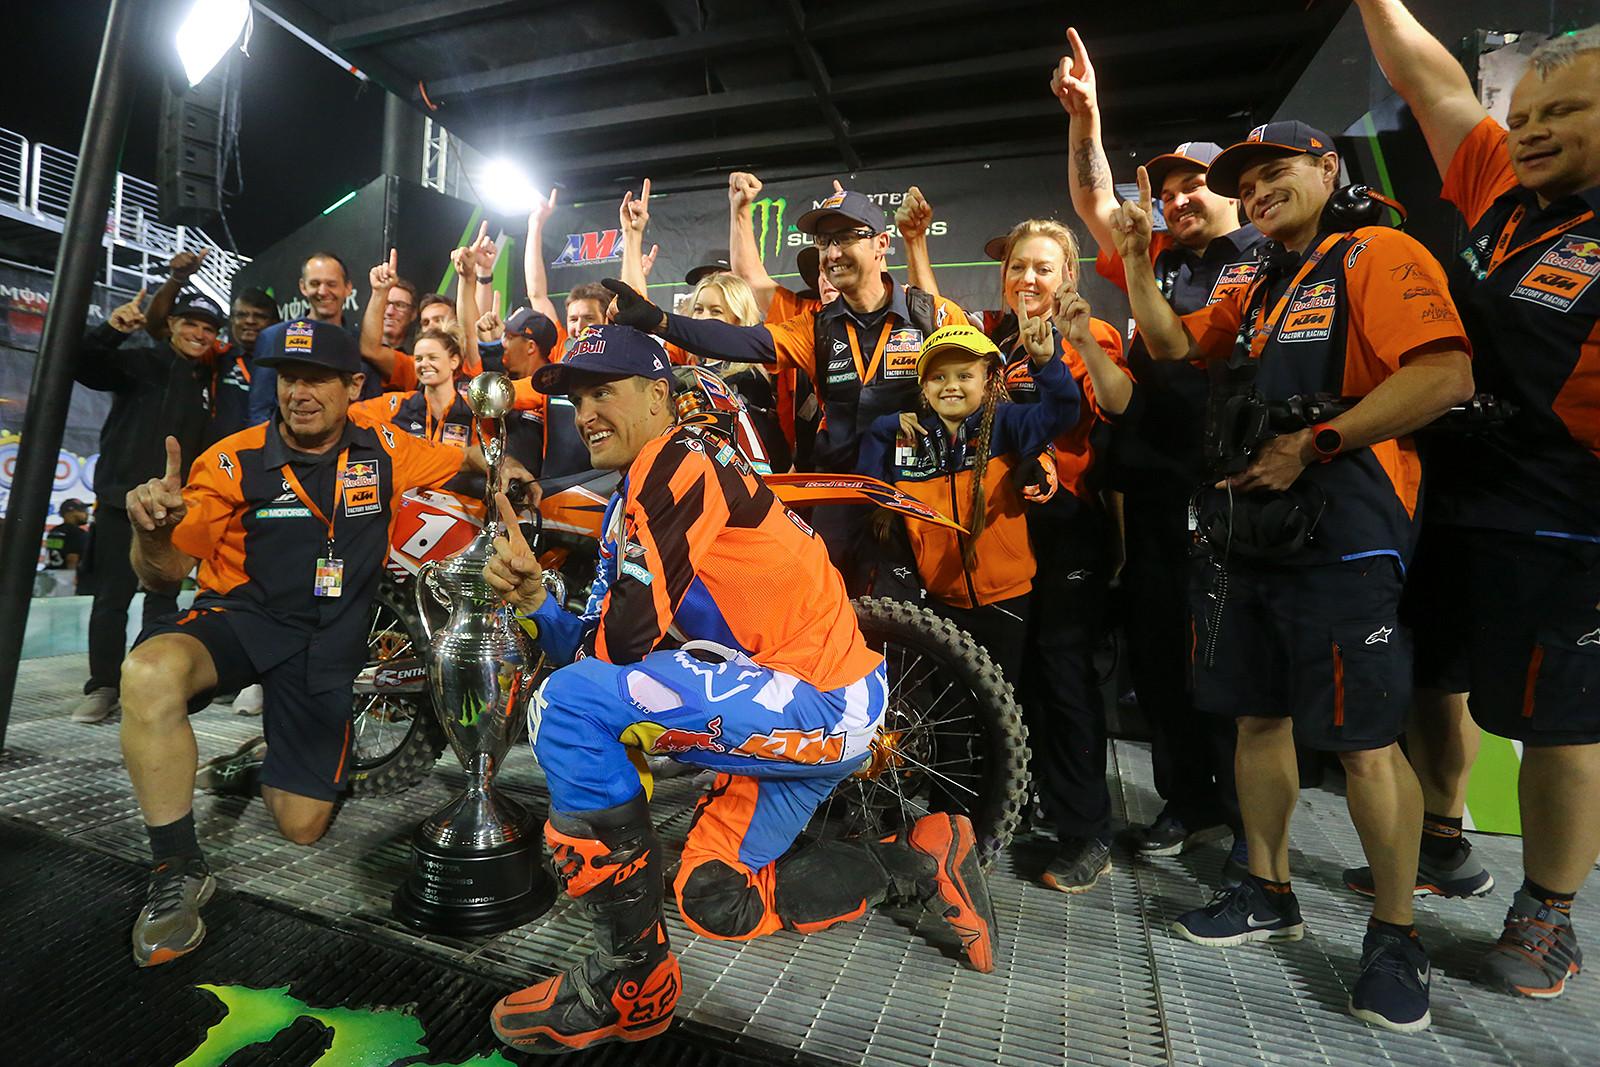 Kudos to the Red Bull KTM crew. That's three 450 titles in a row for Ryan Dungey.While there have been rumors of him retiring (and Ryan shut them down at the pre-race press conference), saying no decision had been made yet), we feel he's been a bit of an underappreciated champ, and people won't realize how much he'll be missed until he's gone.